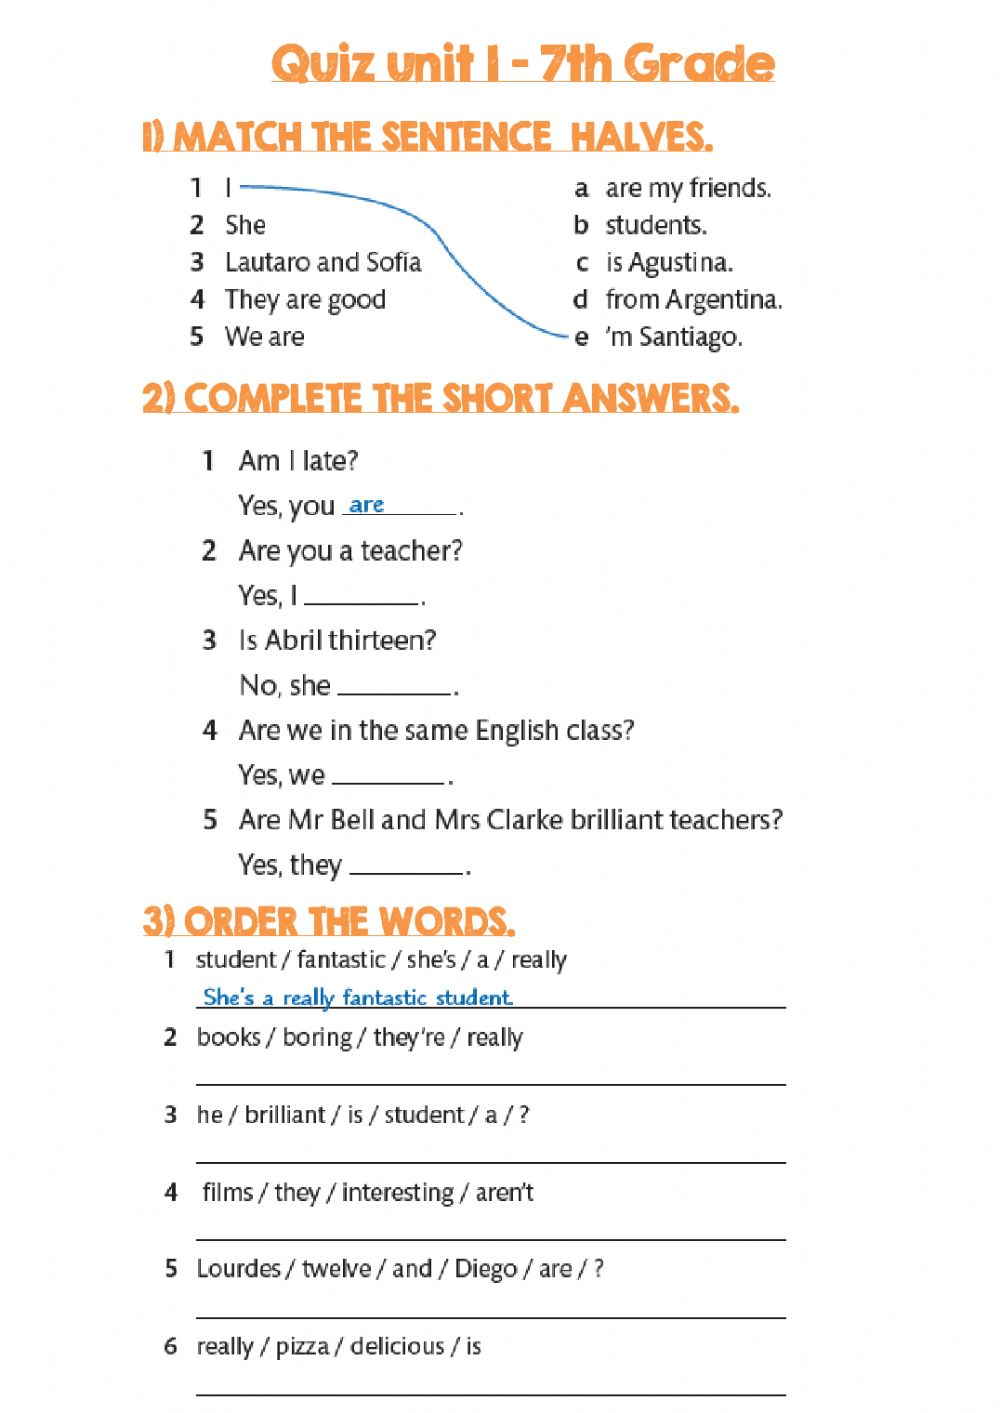 hight resolution of Quiz unit 1 7th grade interactive worksheet